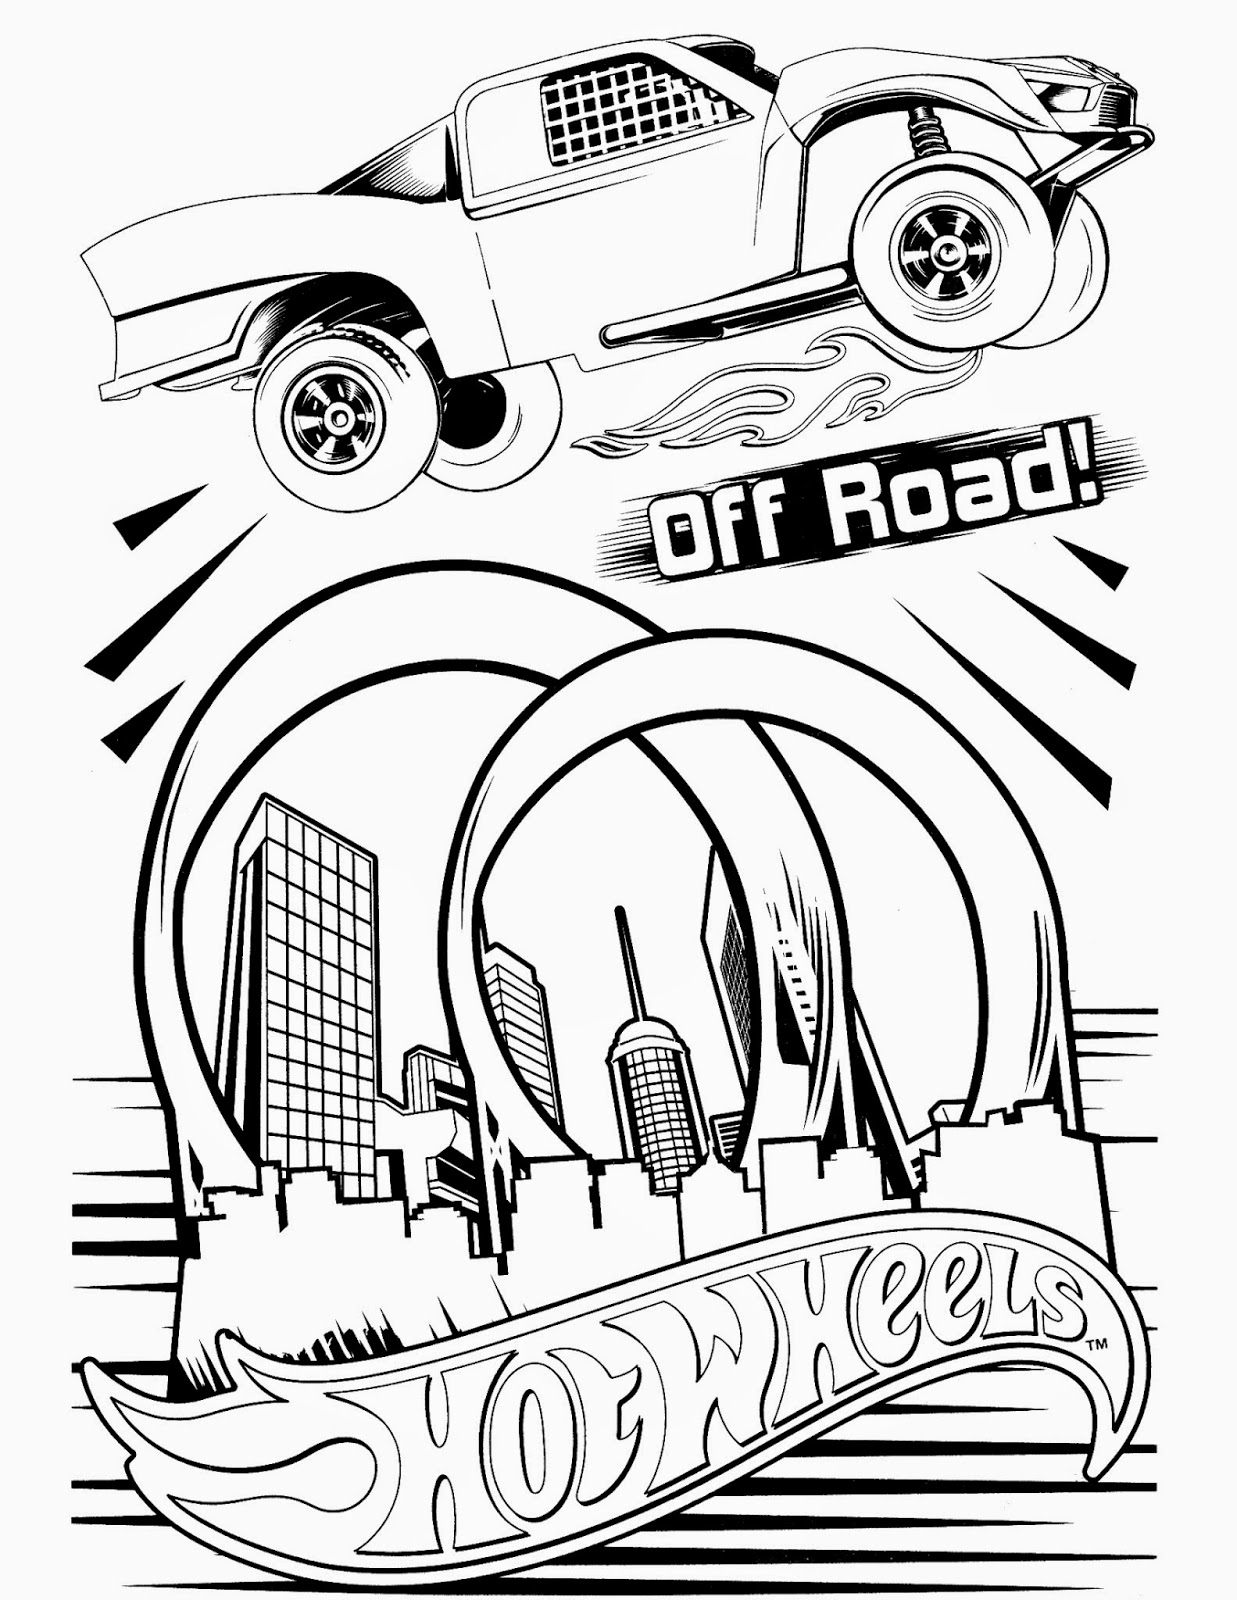 Coloring pages for hot wheels - Hot Wheels Coloring Pages 88